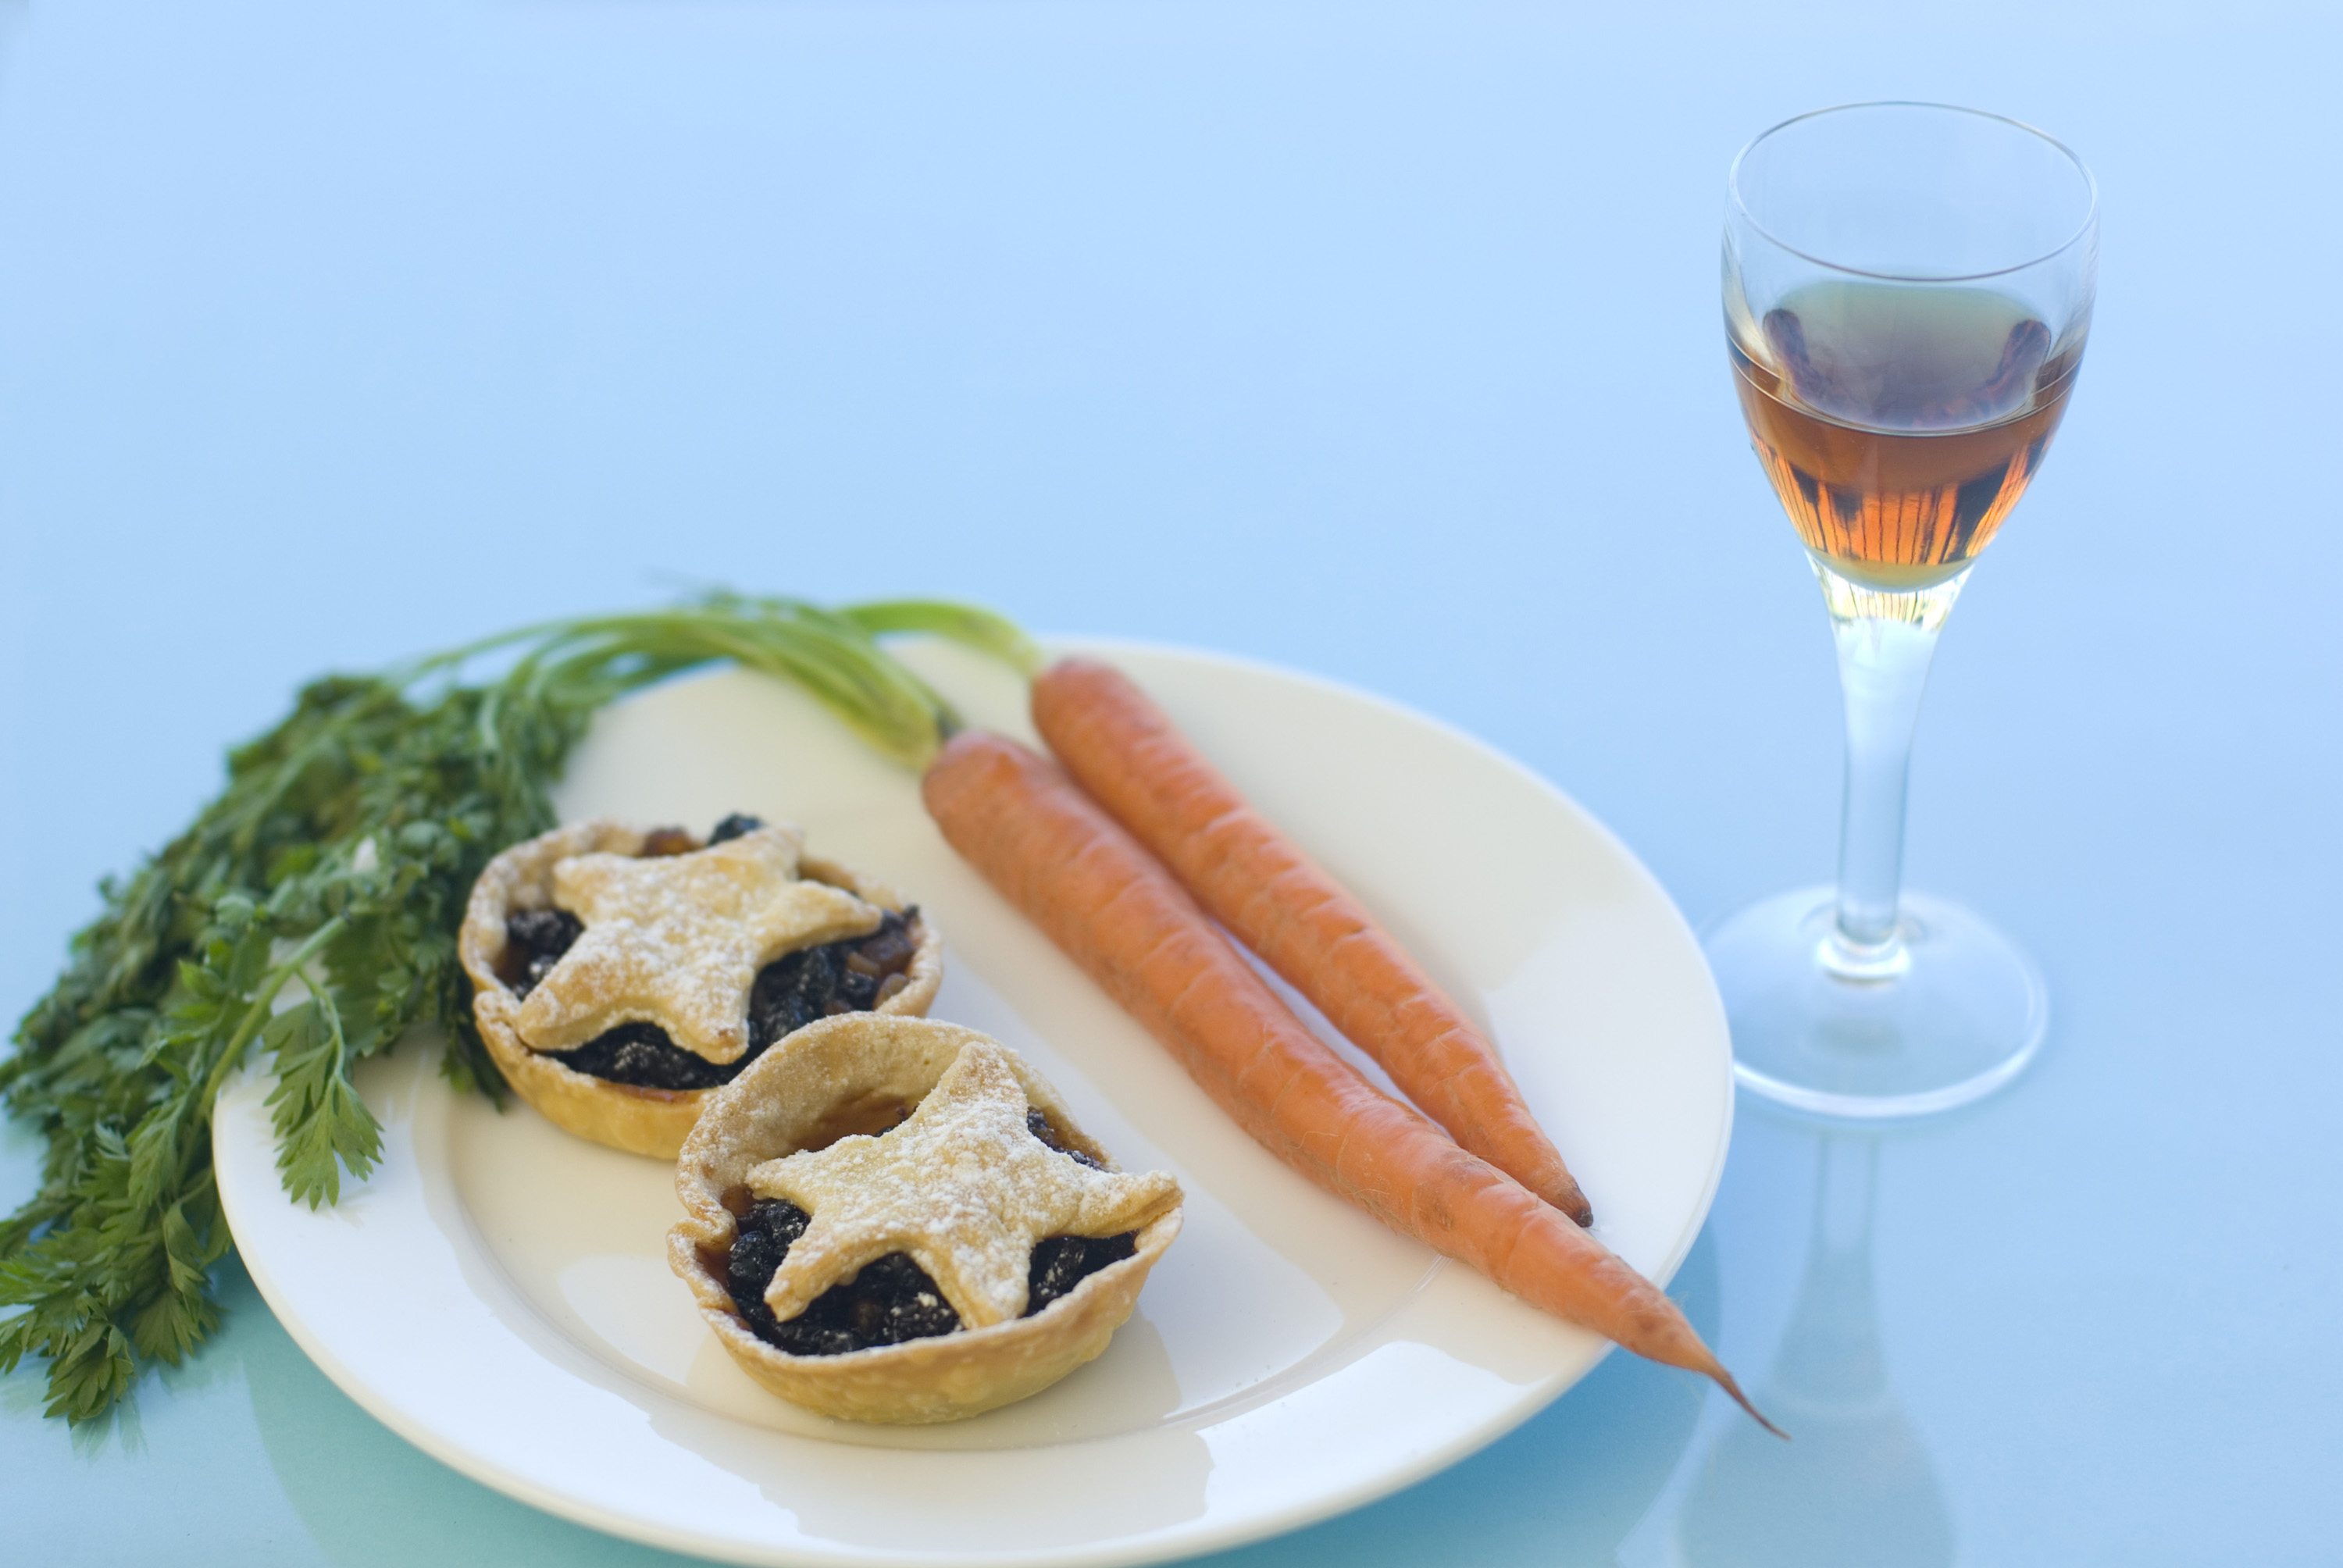 a place of mince pies and sherry for santa plus a carrot left for rudolph